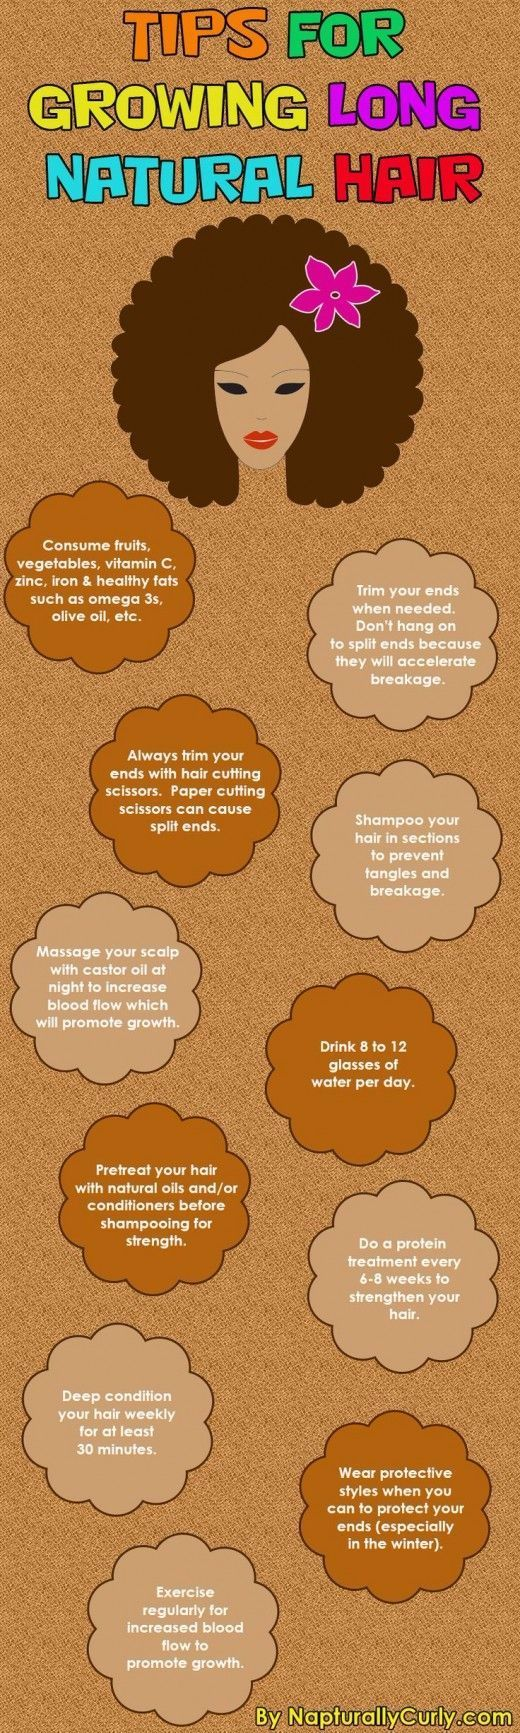 Great tips for growing your hair!